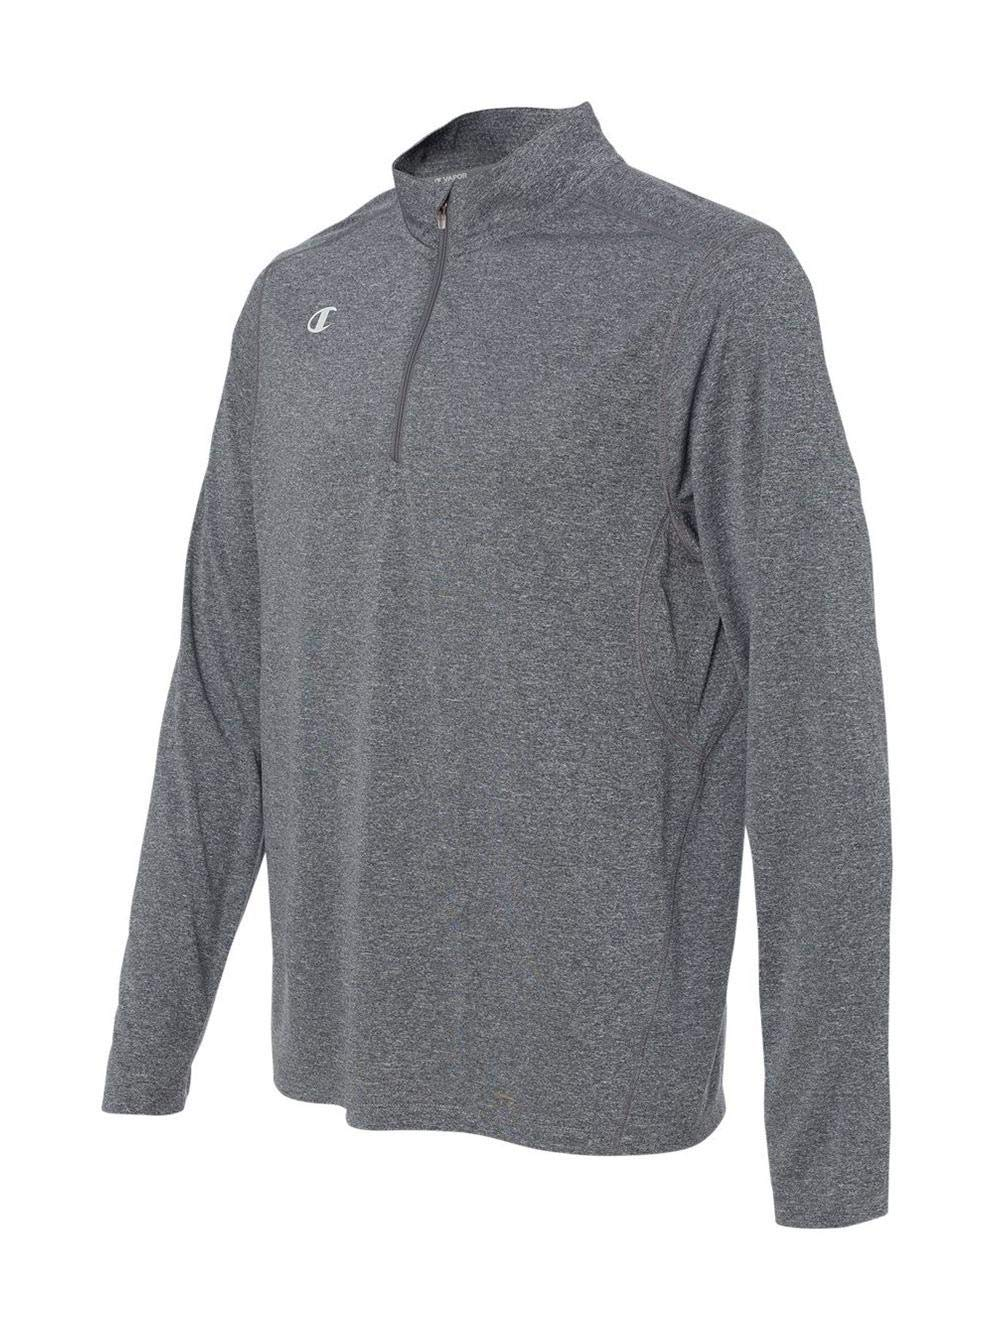 Champion Men's Quarter-Zip Double Dry Pullover, Slate Grey Heather, Small by Champion